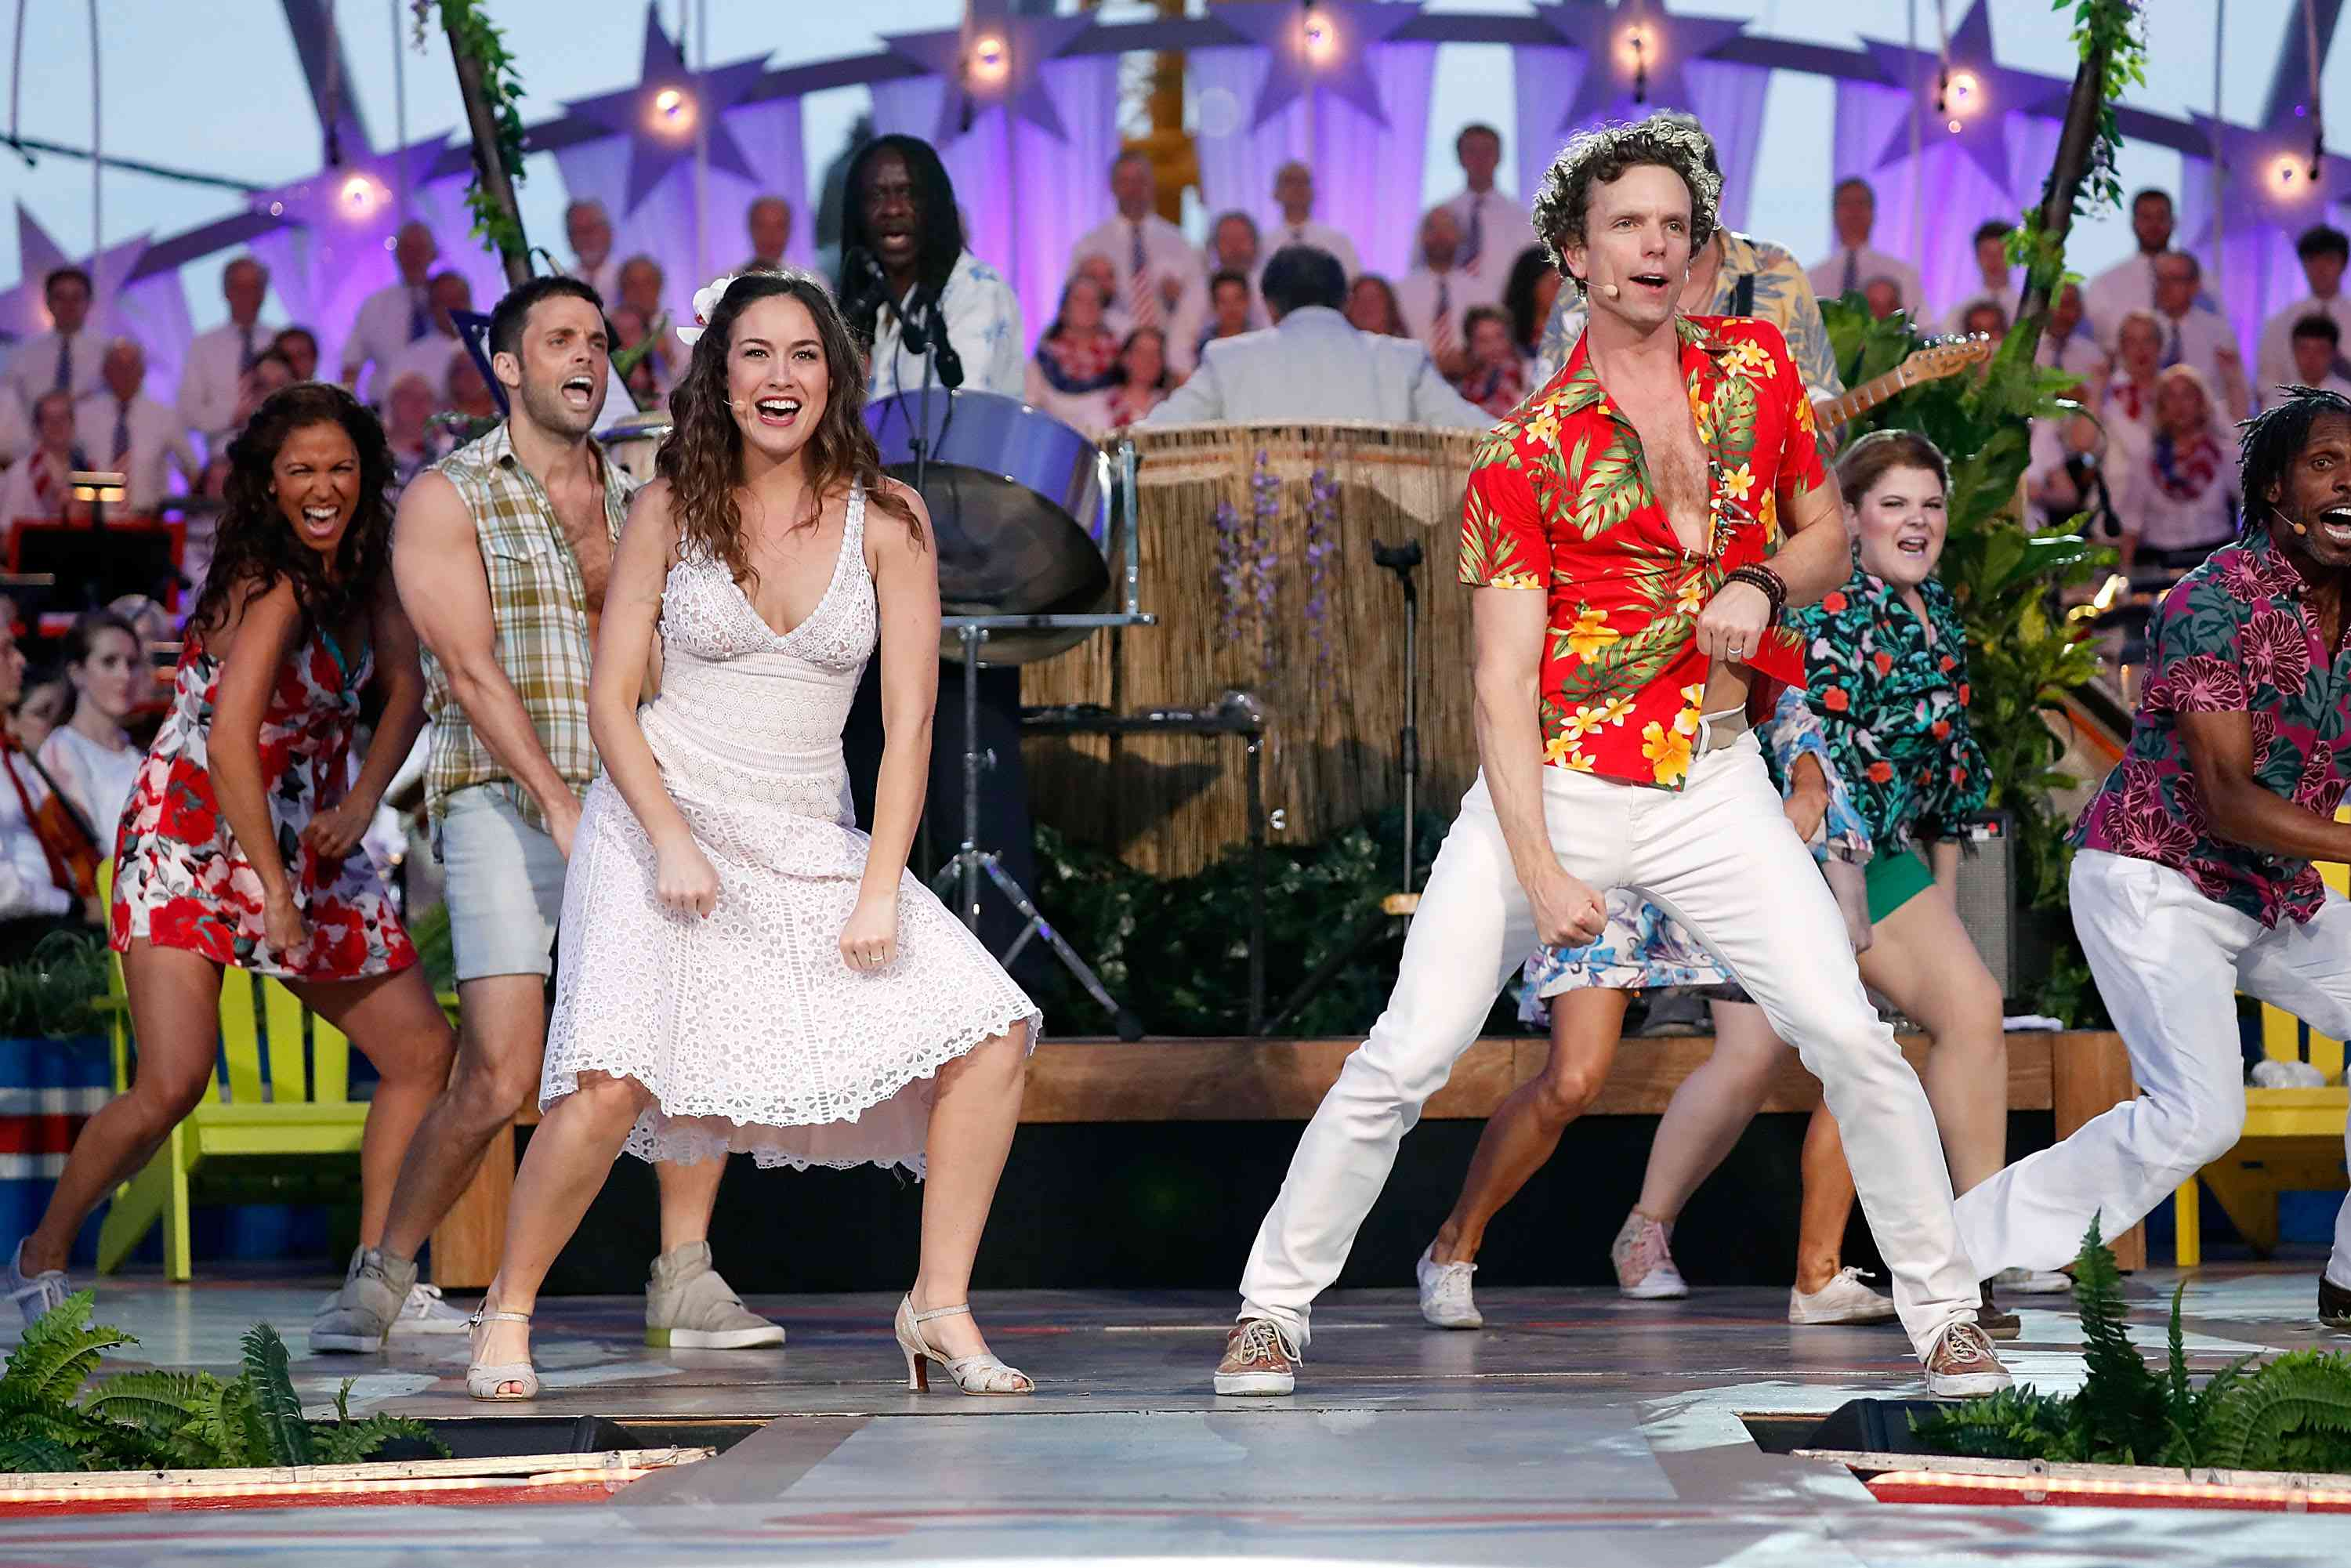 The cast of Margaritaville dancing on stage